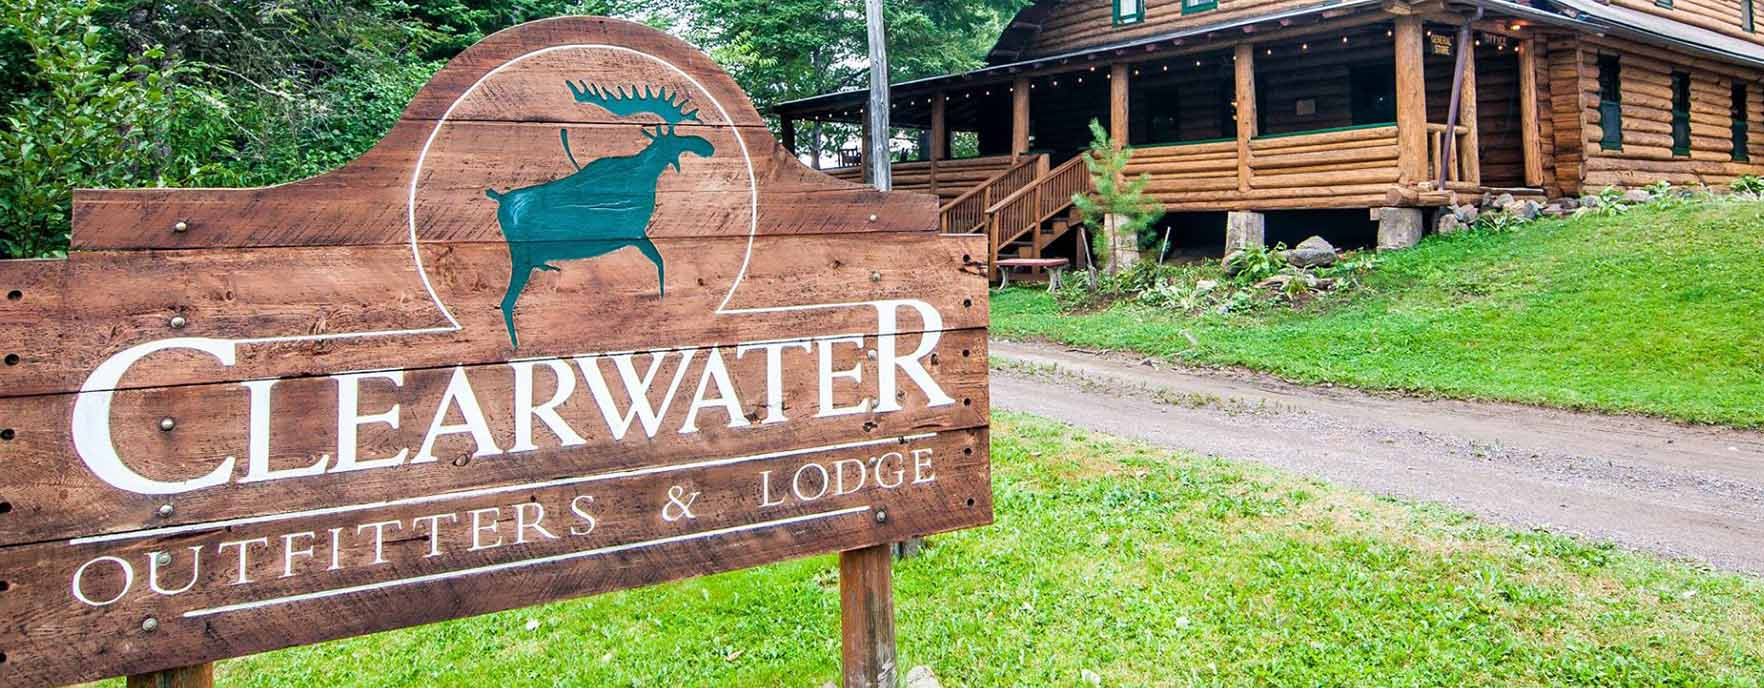 Clearwater-Lodge-Front-Sign-cropped-sign